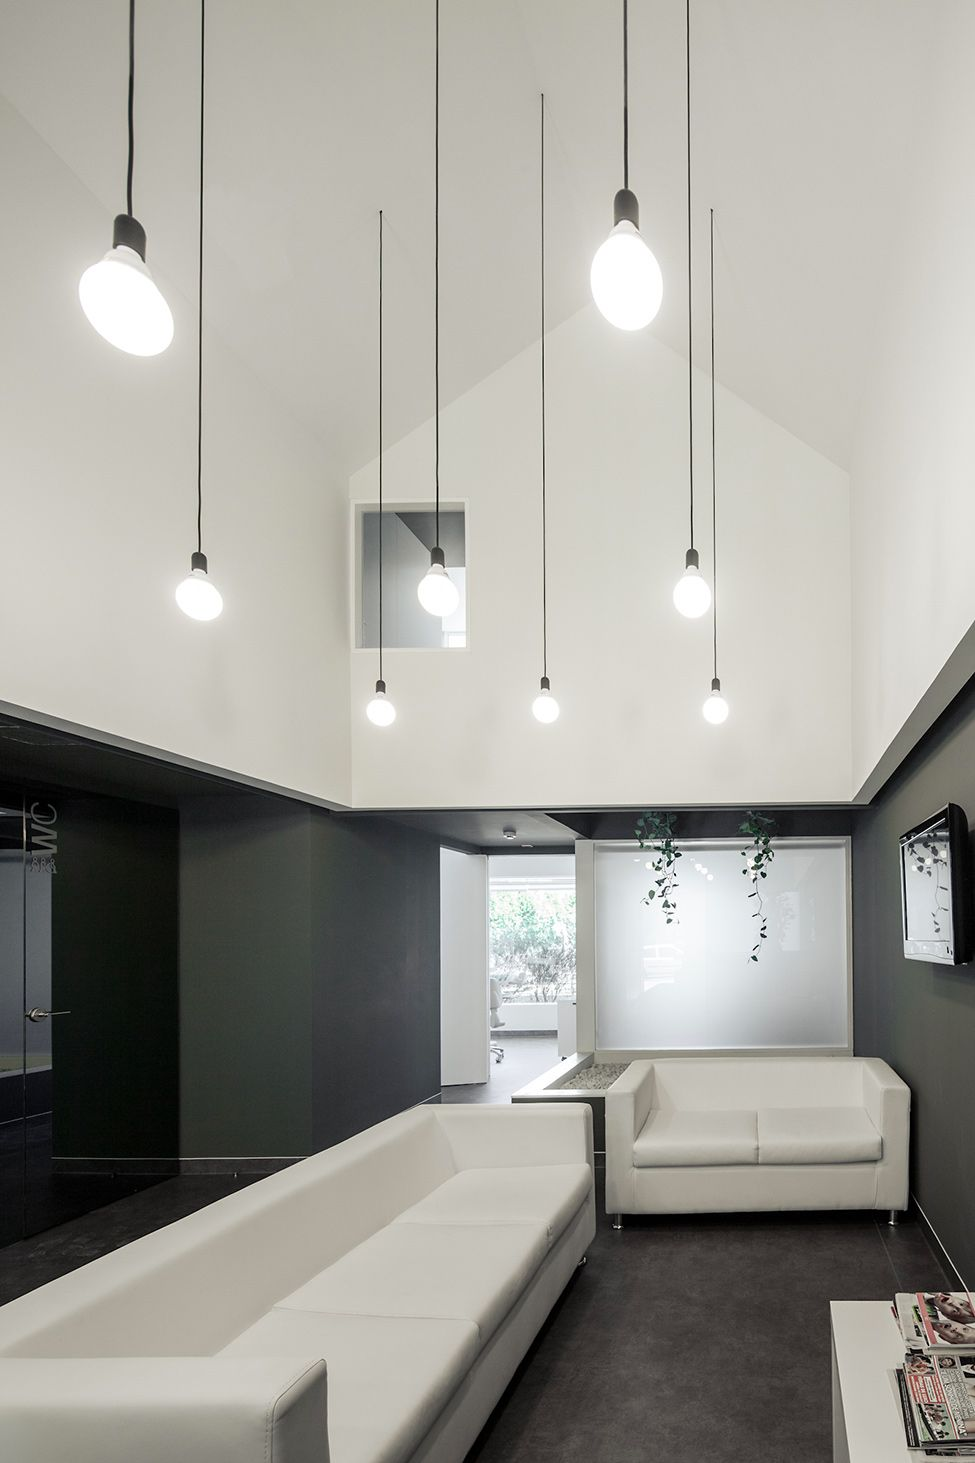 Dental clinic in the city in portugal medical office for Dental clinic interior designs